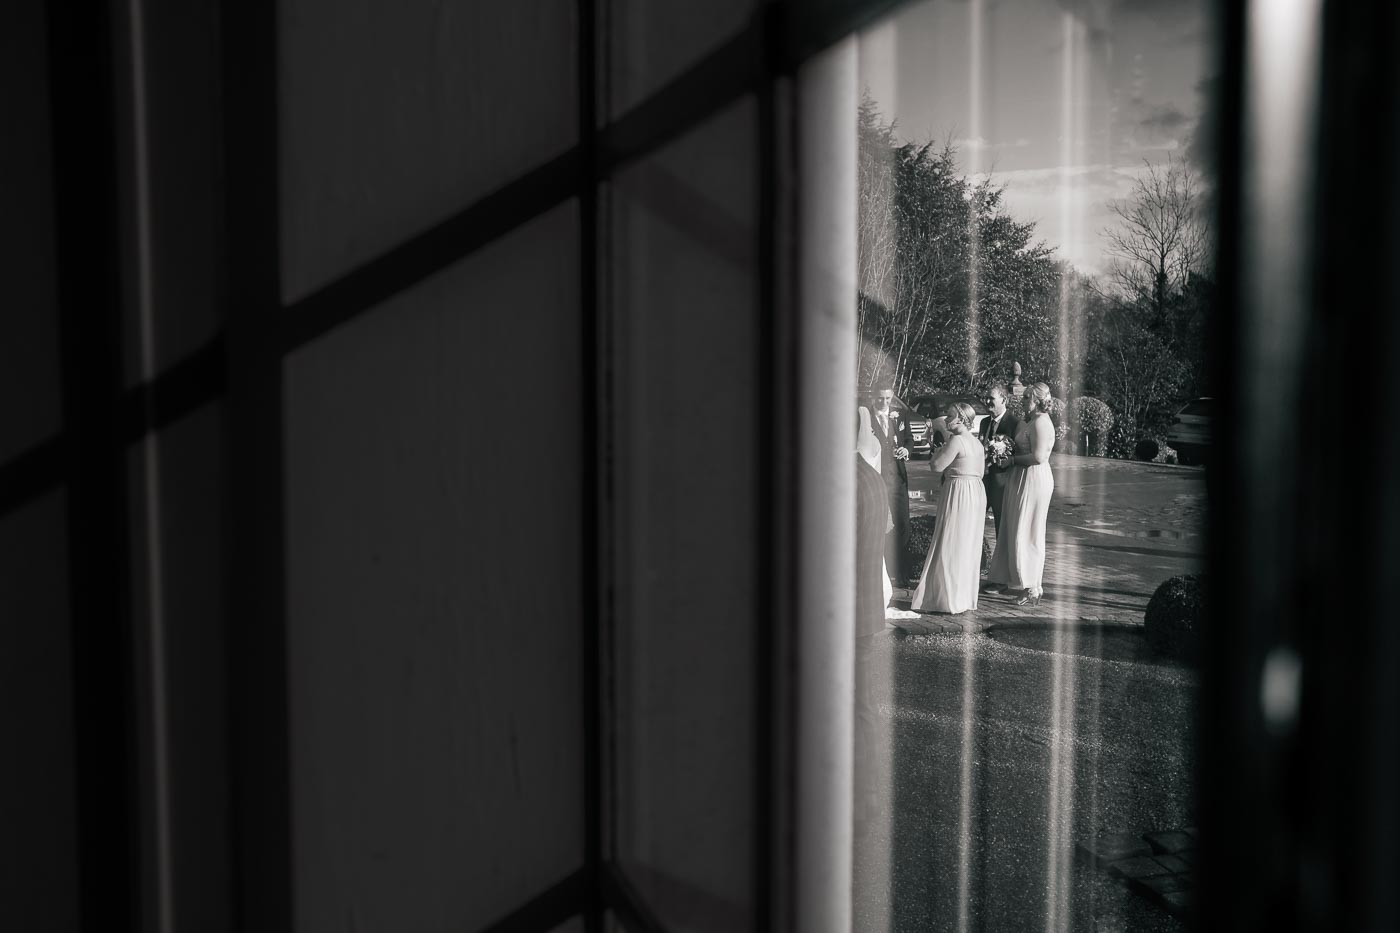 wedding guests taken through the window